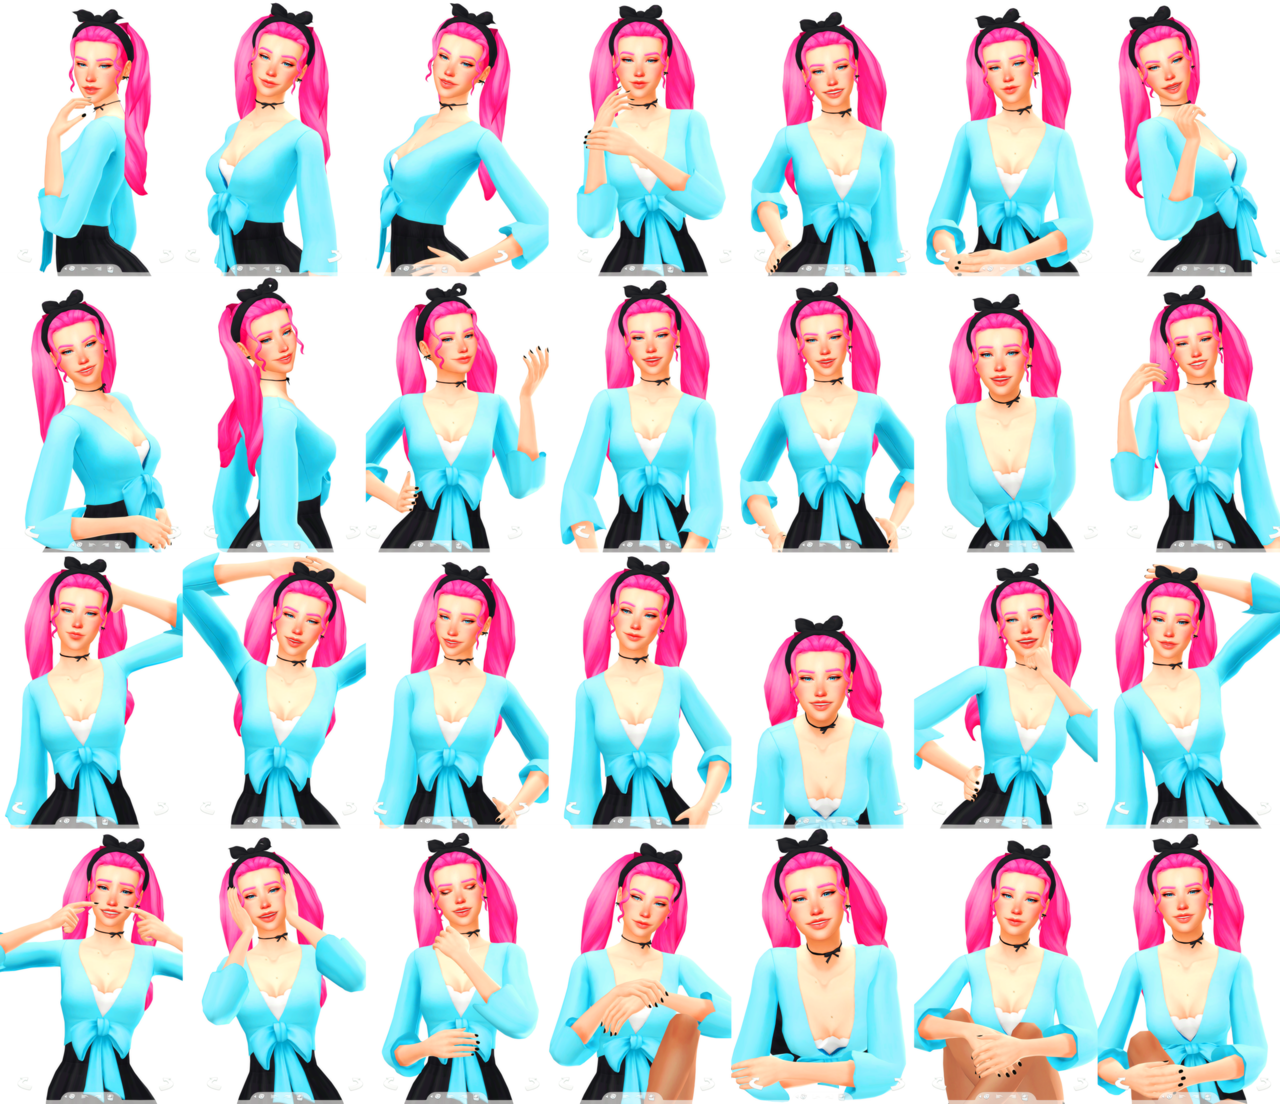 No Need To Spend A Fortune On These: Cute Poses No.1 : These Cute Smiling Poses Are Something I